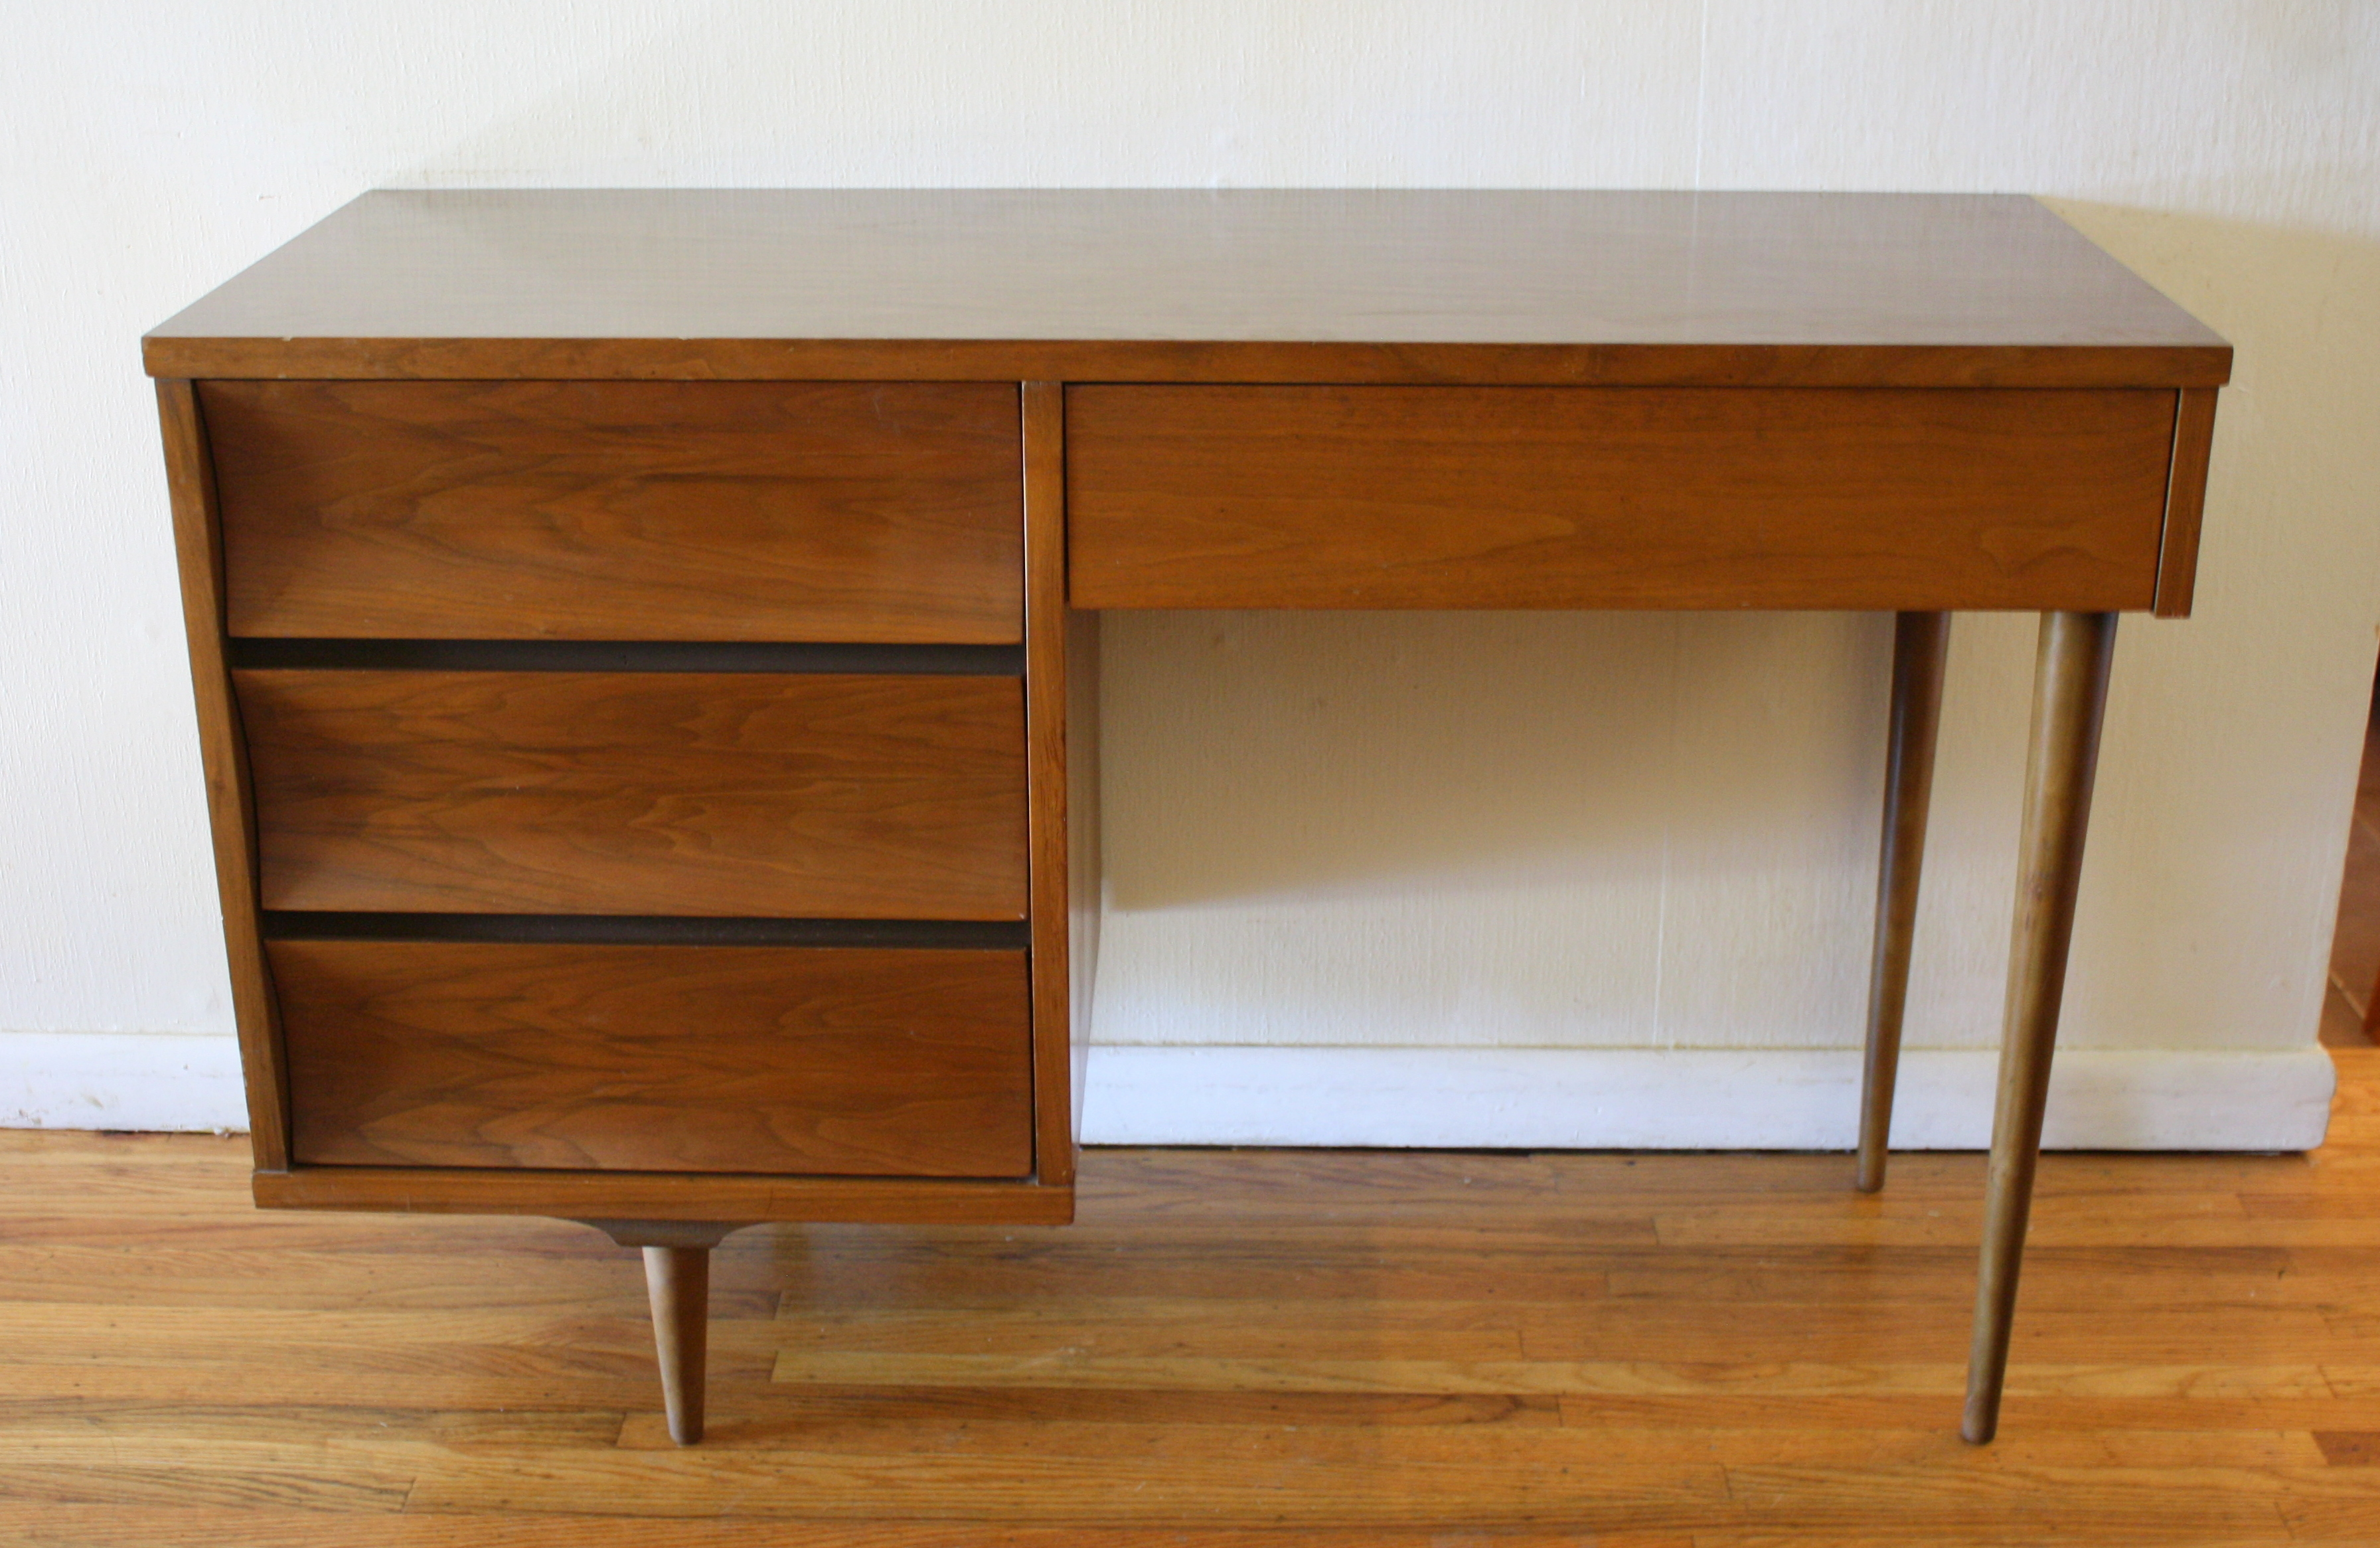 california sons pierce by modern fit with drawers mid height and chairish century drawer desk aspect width product